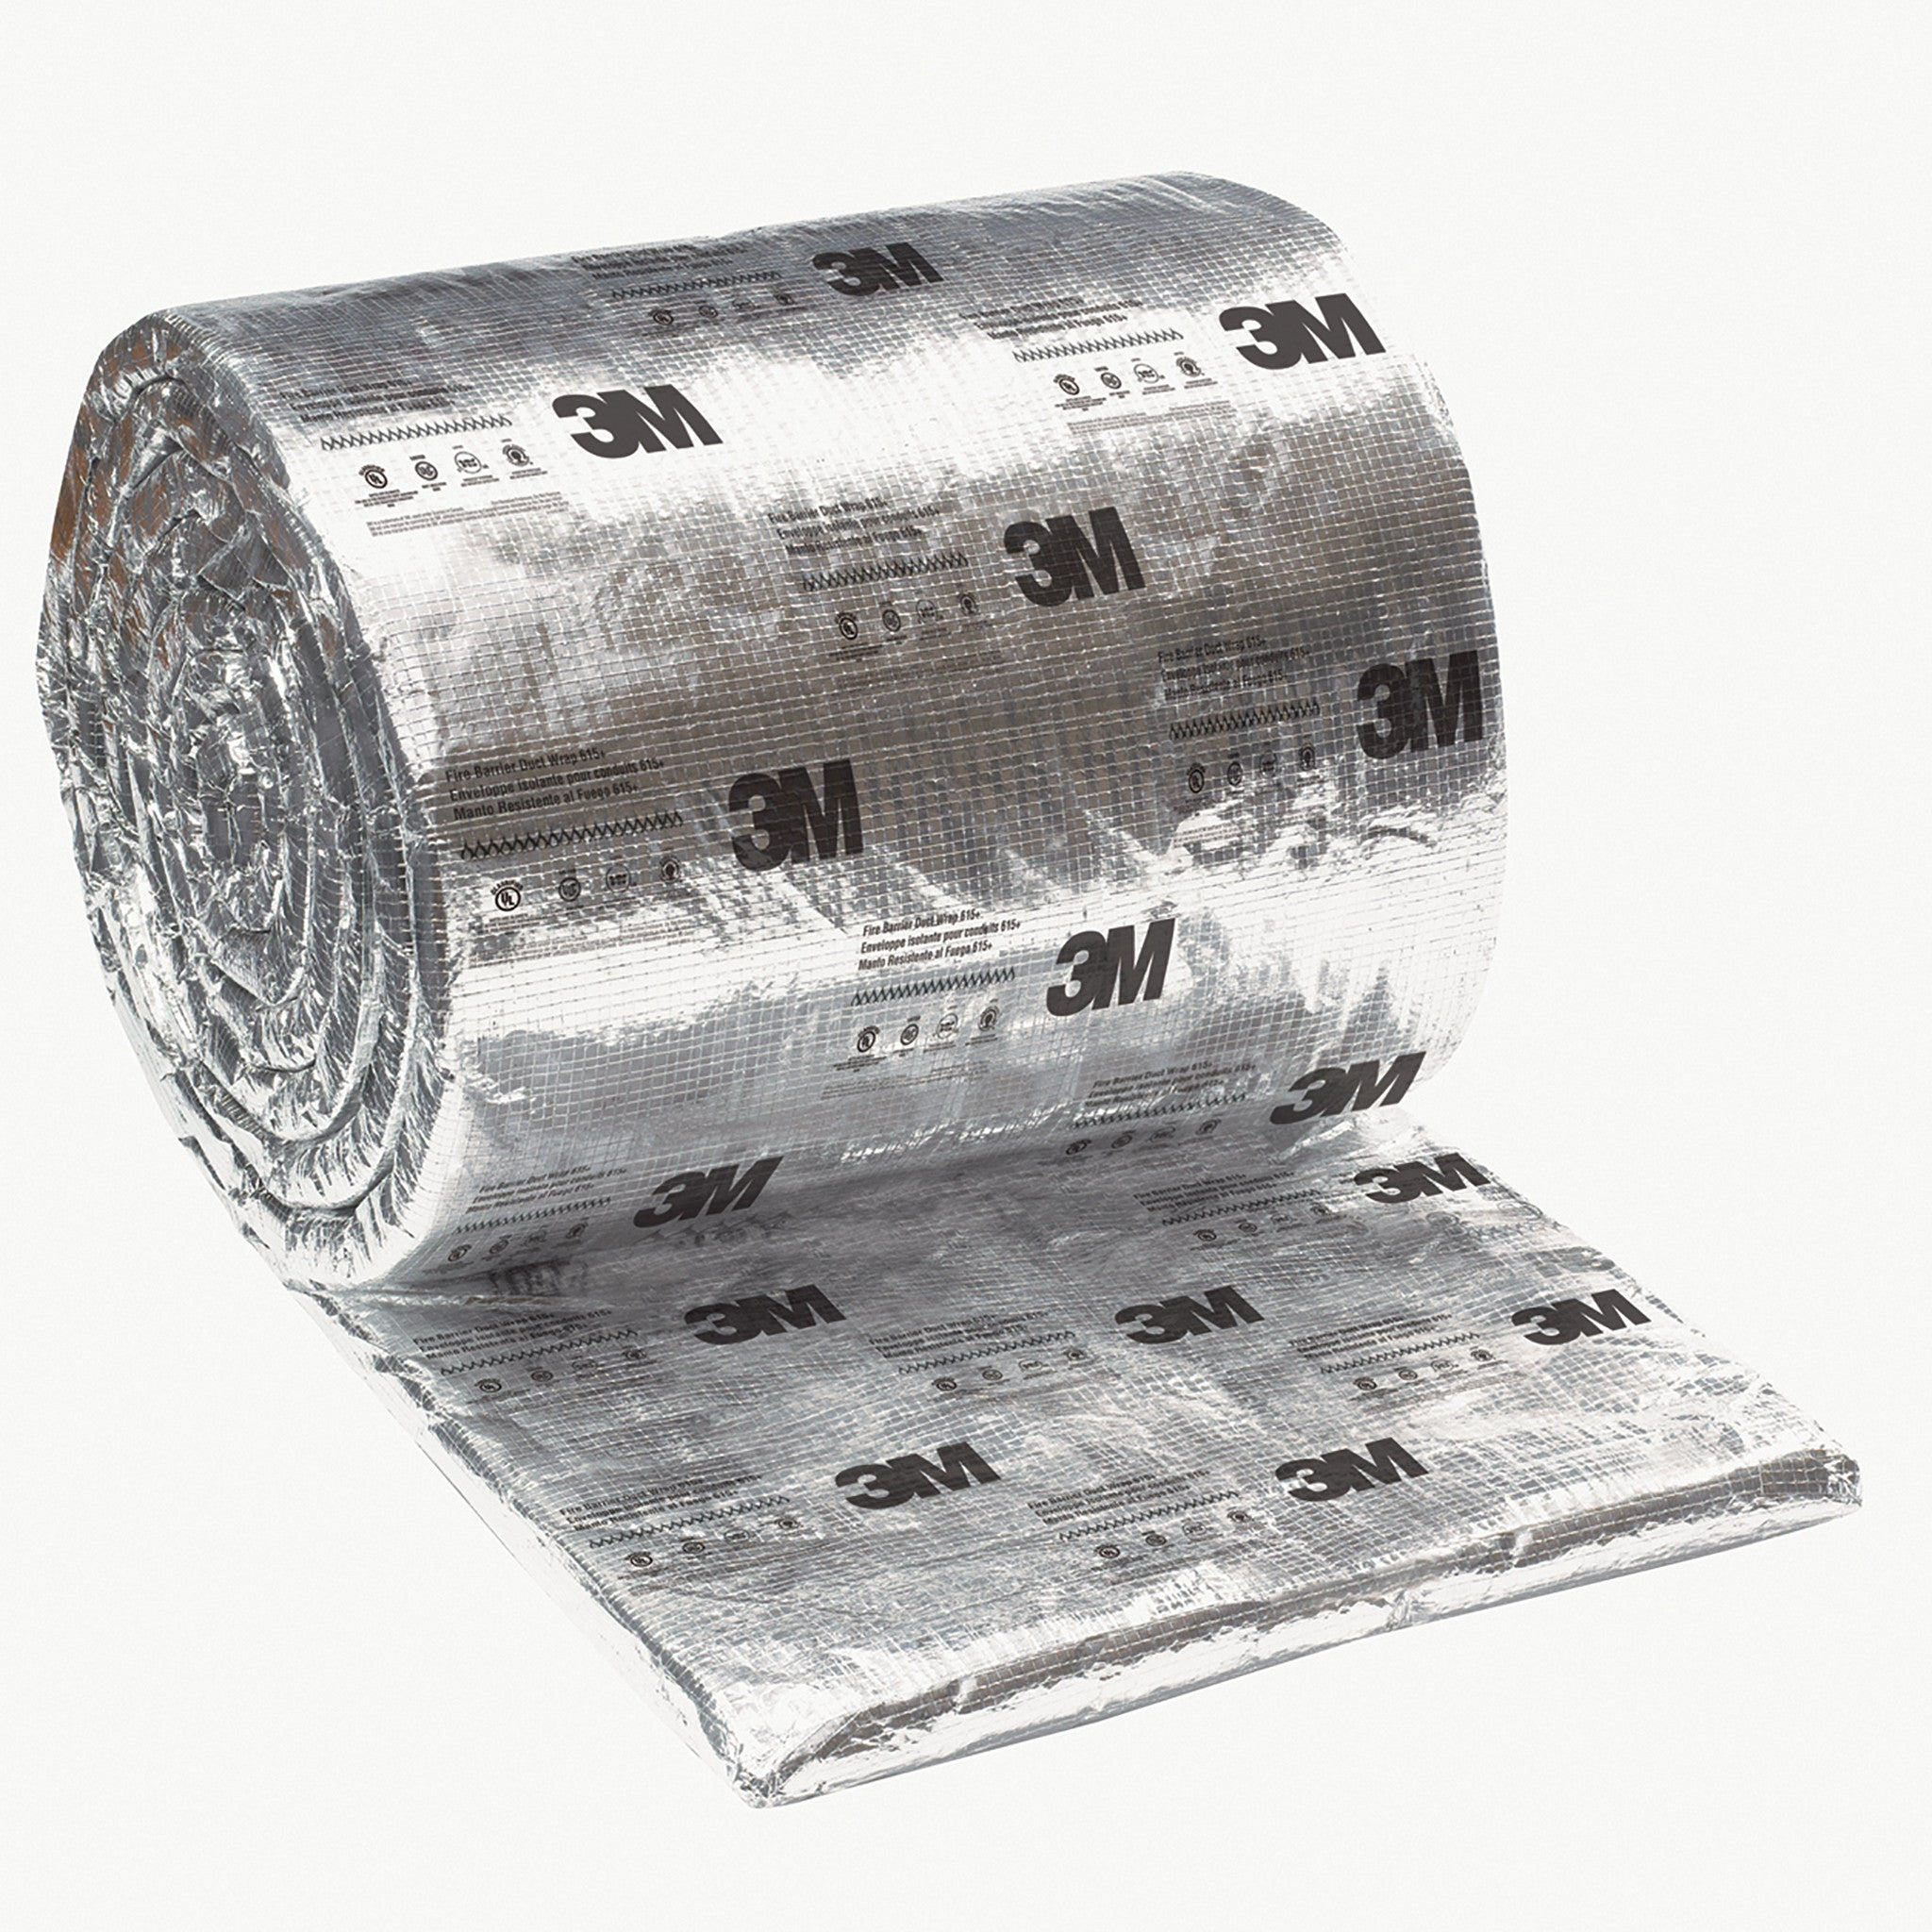 #615852 3M™ Fire Barrier Duct Wrap 615  – APi Distribution Highly Rated 3079 Furnace Duct Insulation Wrap wallpapers with 2048x2048 px on helpvideos.info - Air Conditioners, Air Coolers and more